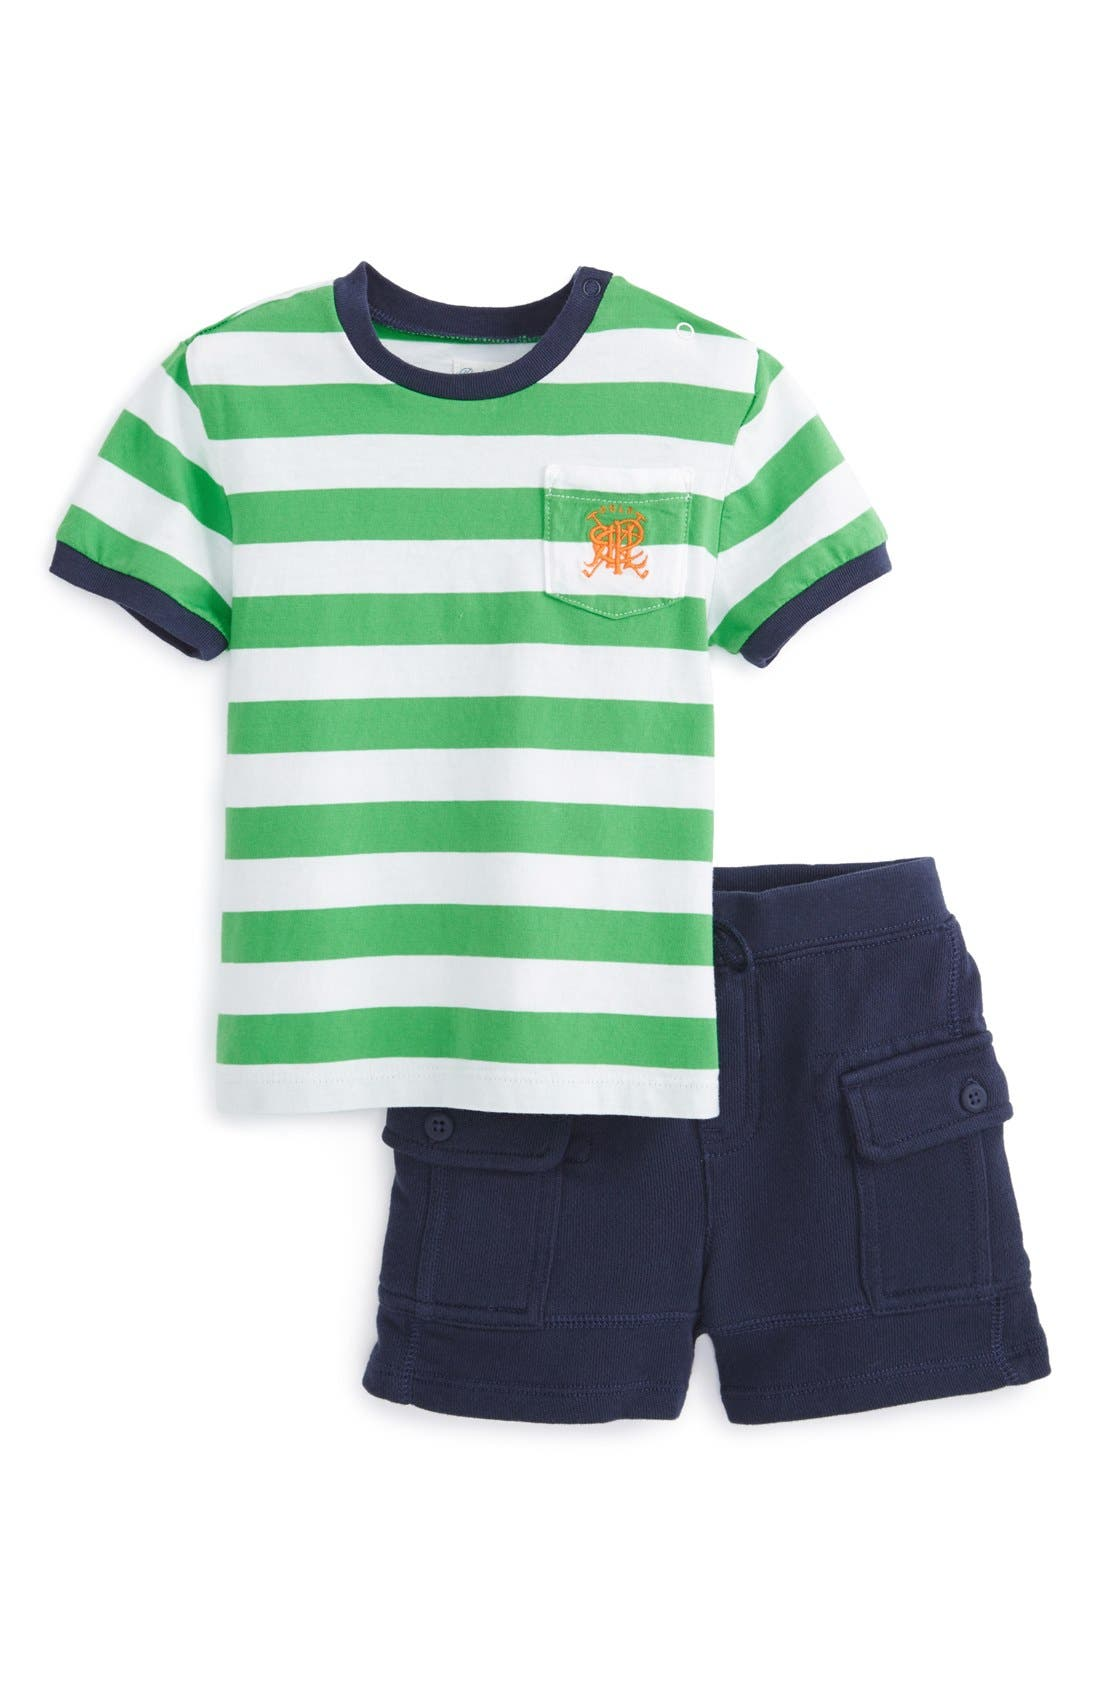 Alternate Image 1 Selected - Ralph Lauren Cotton Jersey T-Shirt & Cargo Shorts (Baby Boys)